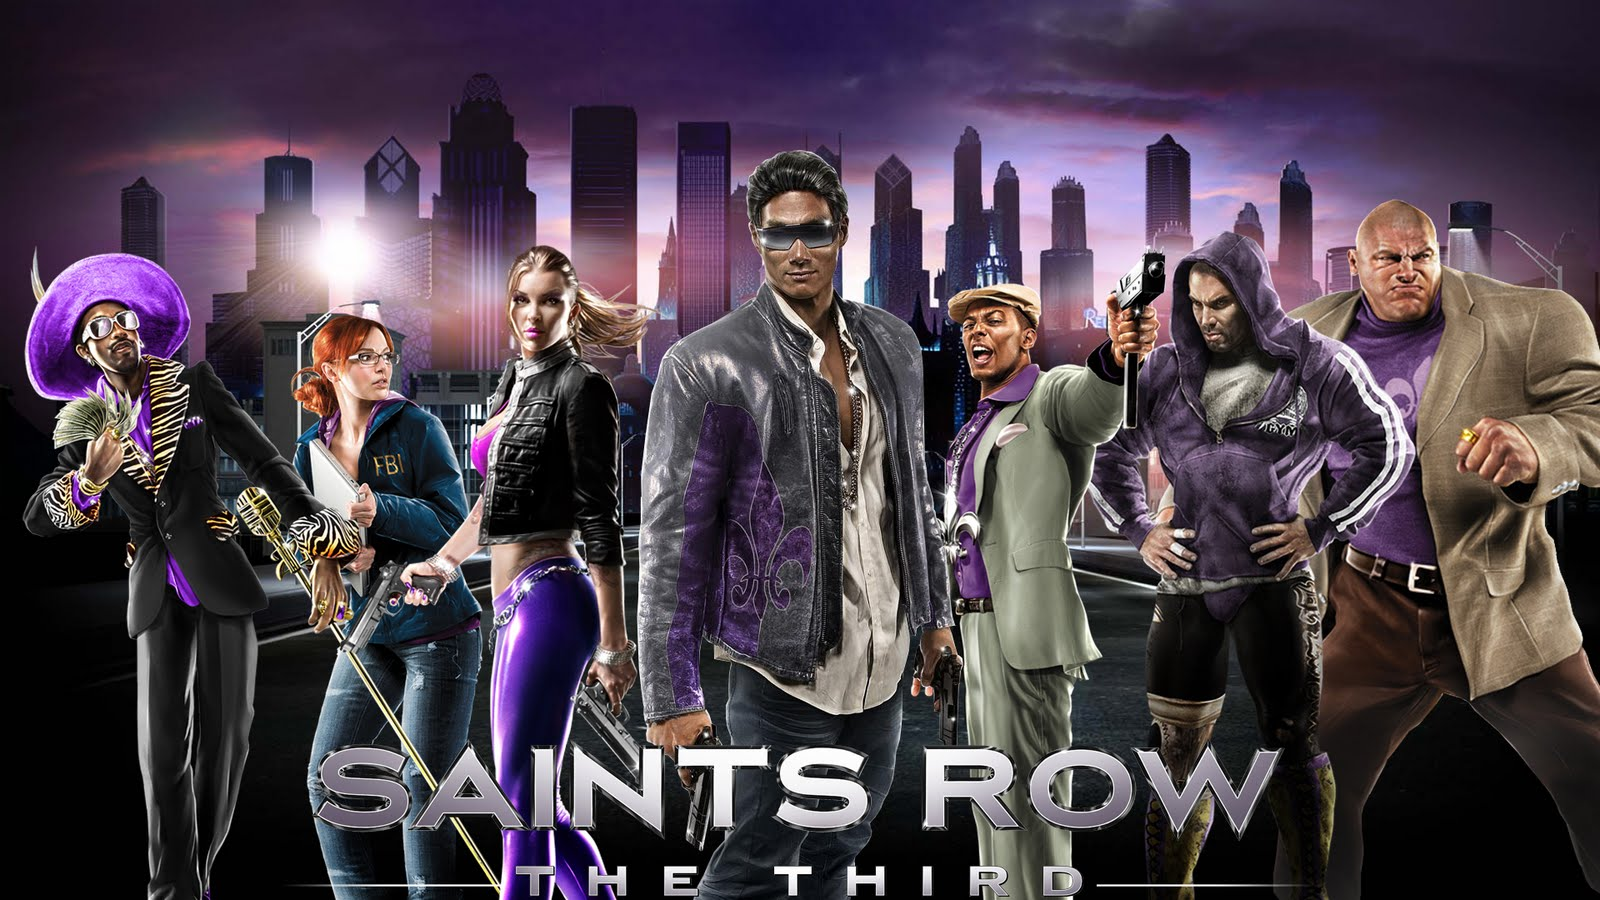 http://4.bp.blogspot.com/-OtPwlO4YIUY/Tso9kxUoRmI/AAAAAAAAAi4/tVn295J2bGQ/s1600/Saints-Row-The-Third-Allies-Wallpaper-Edit.jpg